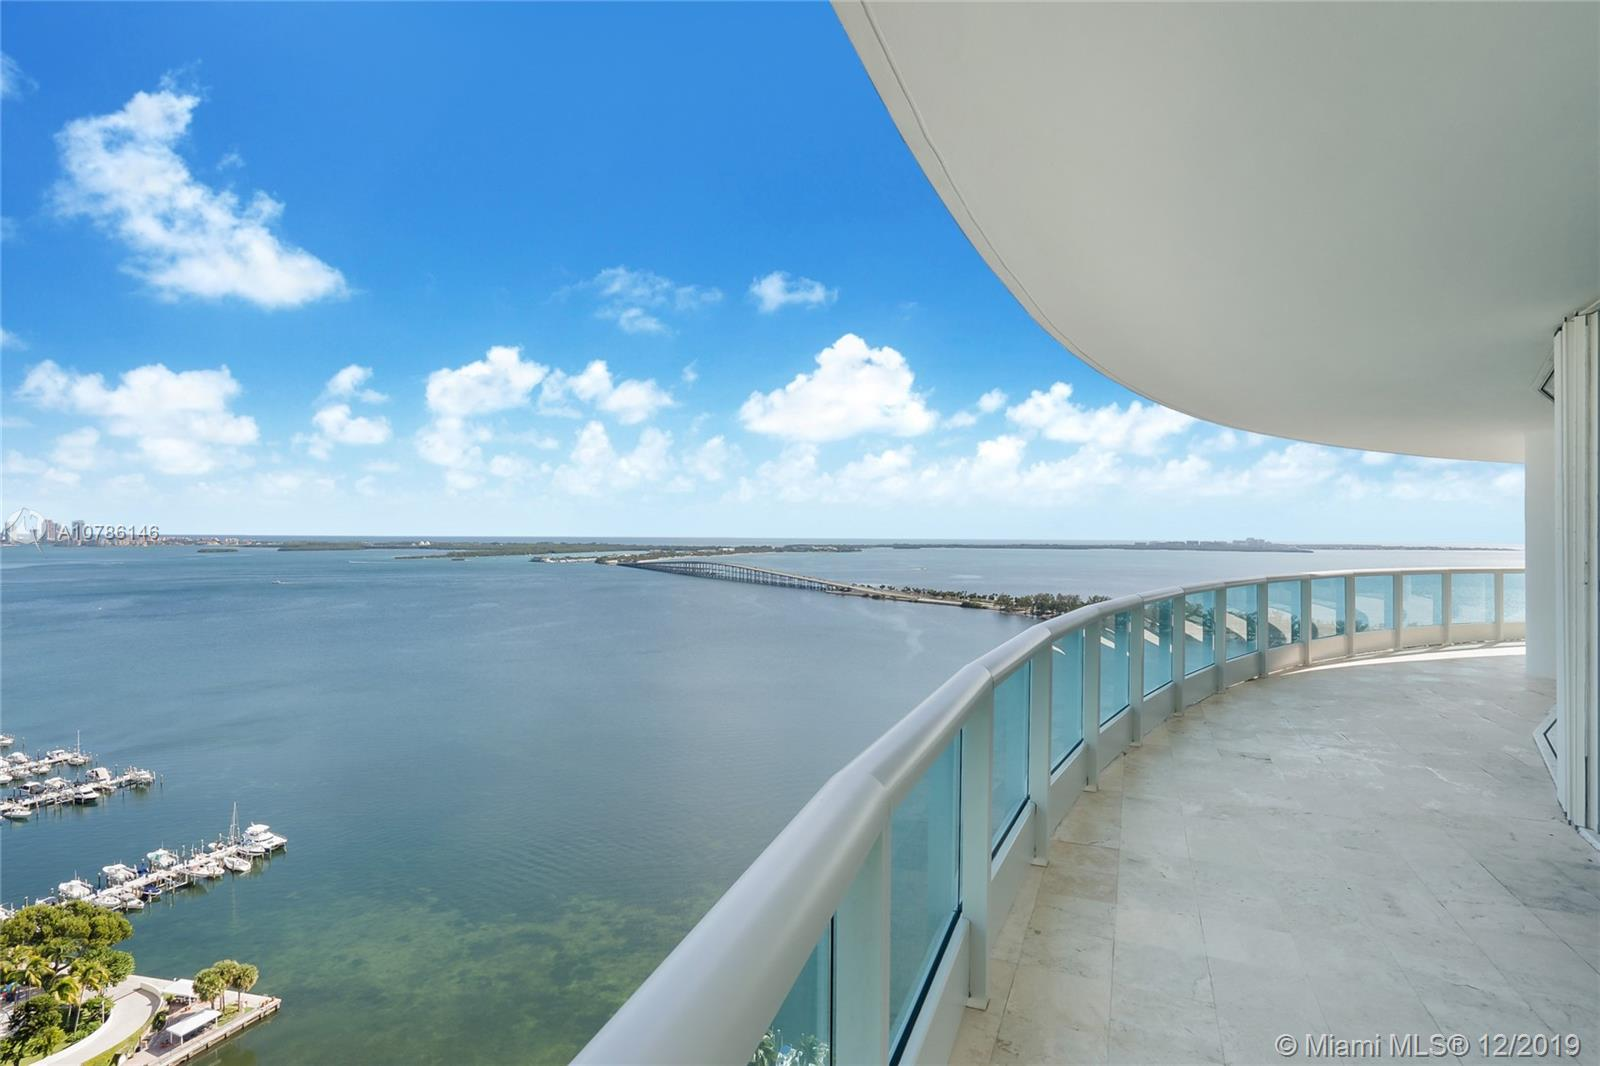 Amazing opportunity to own spectacular designer apartment in sough after Bristol Towers. This one of a kind, soon to be completed unit in desirable 01 line features gorgeous panoramic ocean views with private foyer elevator opening to 3,065 sqft of beautiful open space with volume ceilings. Integrated top of the line NEW Snaideros Italian kitchen cabinetry. Italian floors thru ought, designer fixtures such as Duravit, Hansgrohe, Philippe Starck and Axor. Direct access to spacious wrap around terrace from every room. Large Laundry area. Option to have 5 full bathrooms + Den. Boutique full service building with all amenities including pool/jacuzzi, BBQ and bar area, new gym & spa, Children play room, lighted tennis court, market/cafe, valet parking + 2 covered